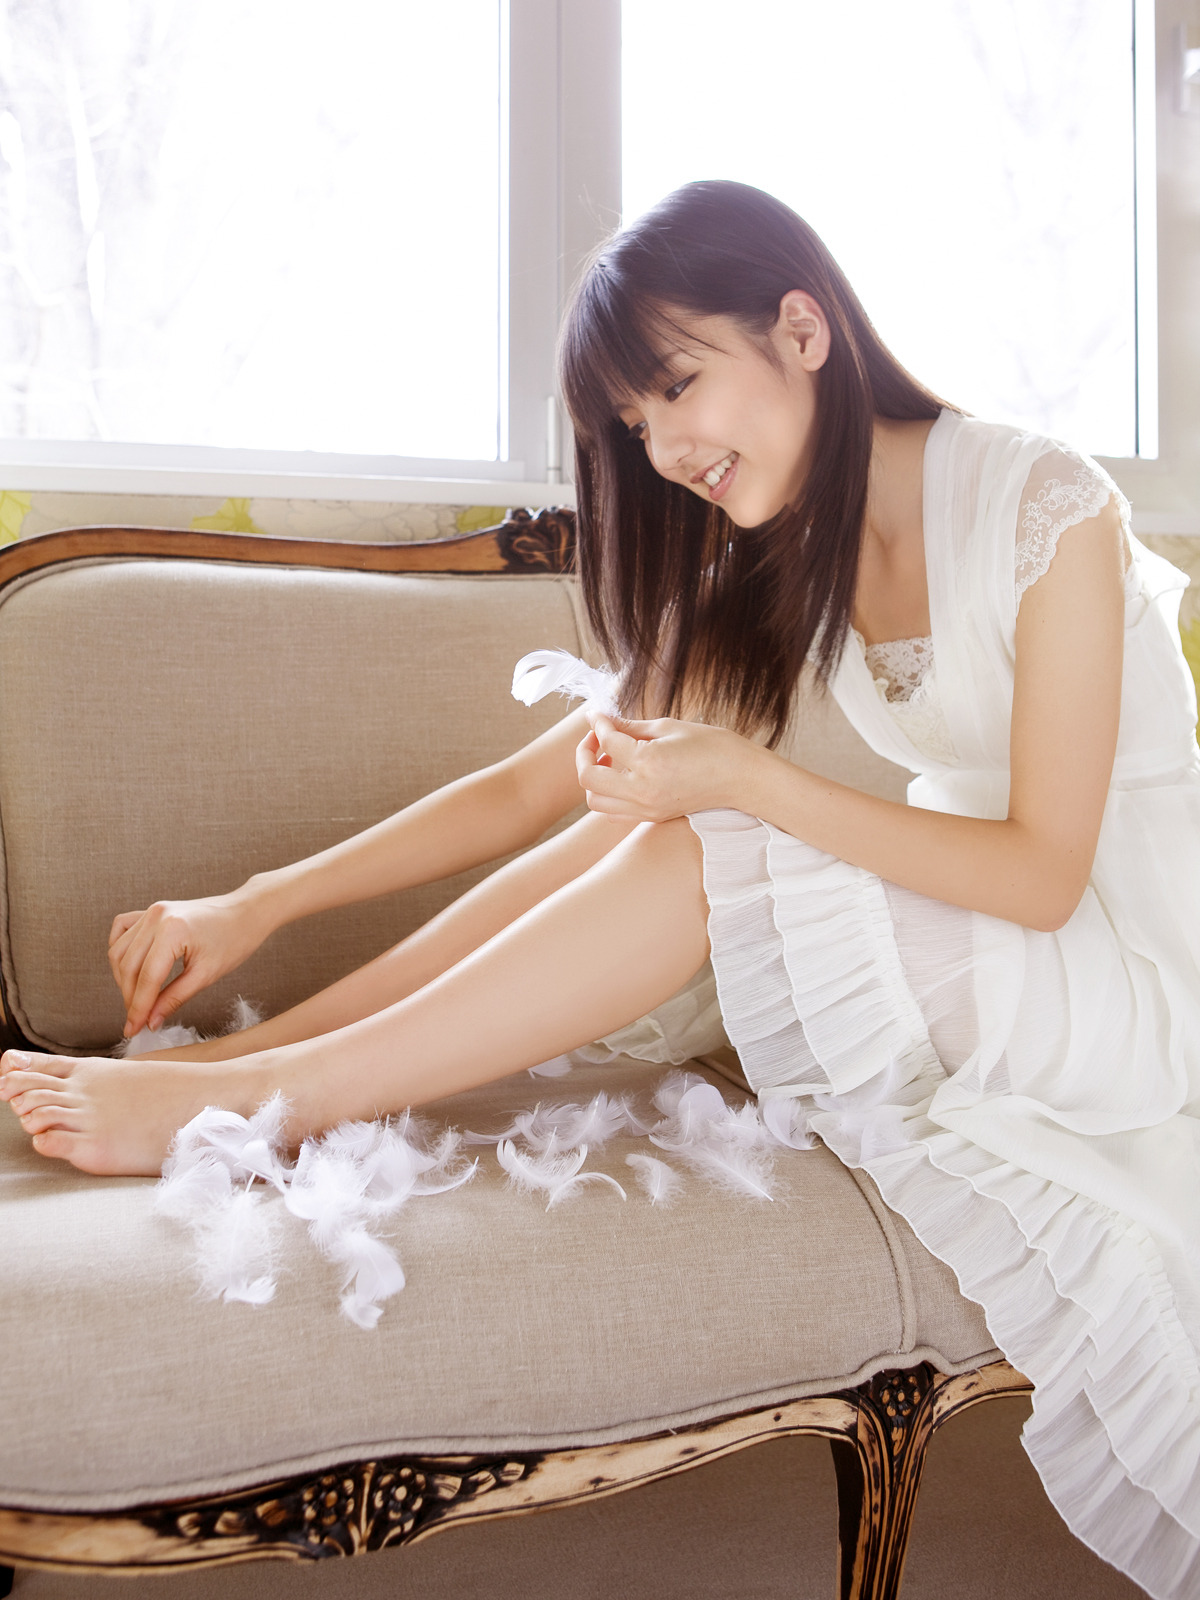 beautynbarefoot:  Erina Mano - Soft and warm, Sealed with care